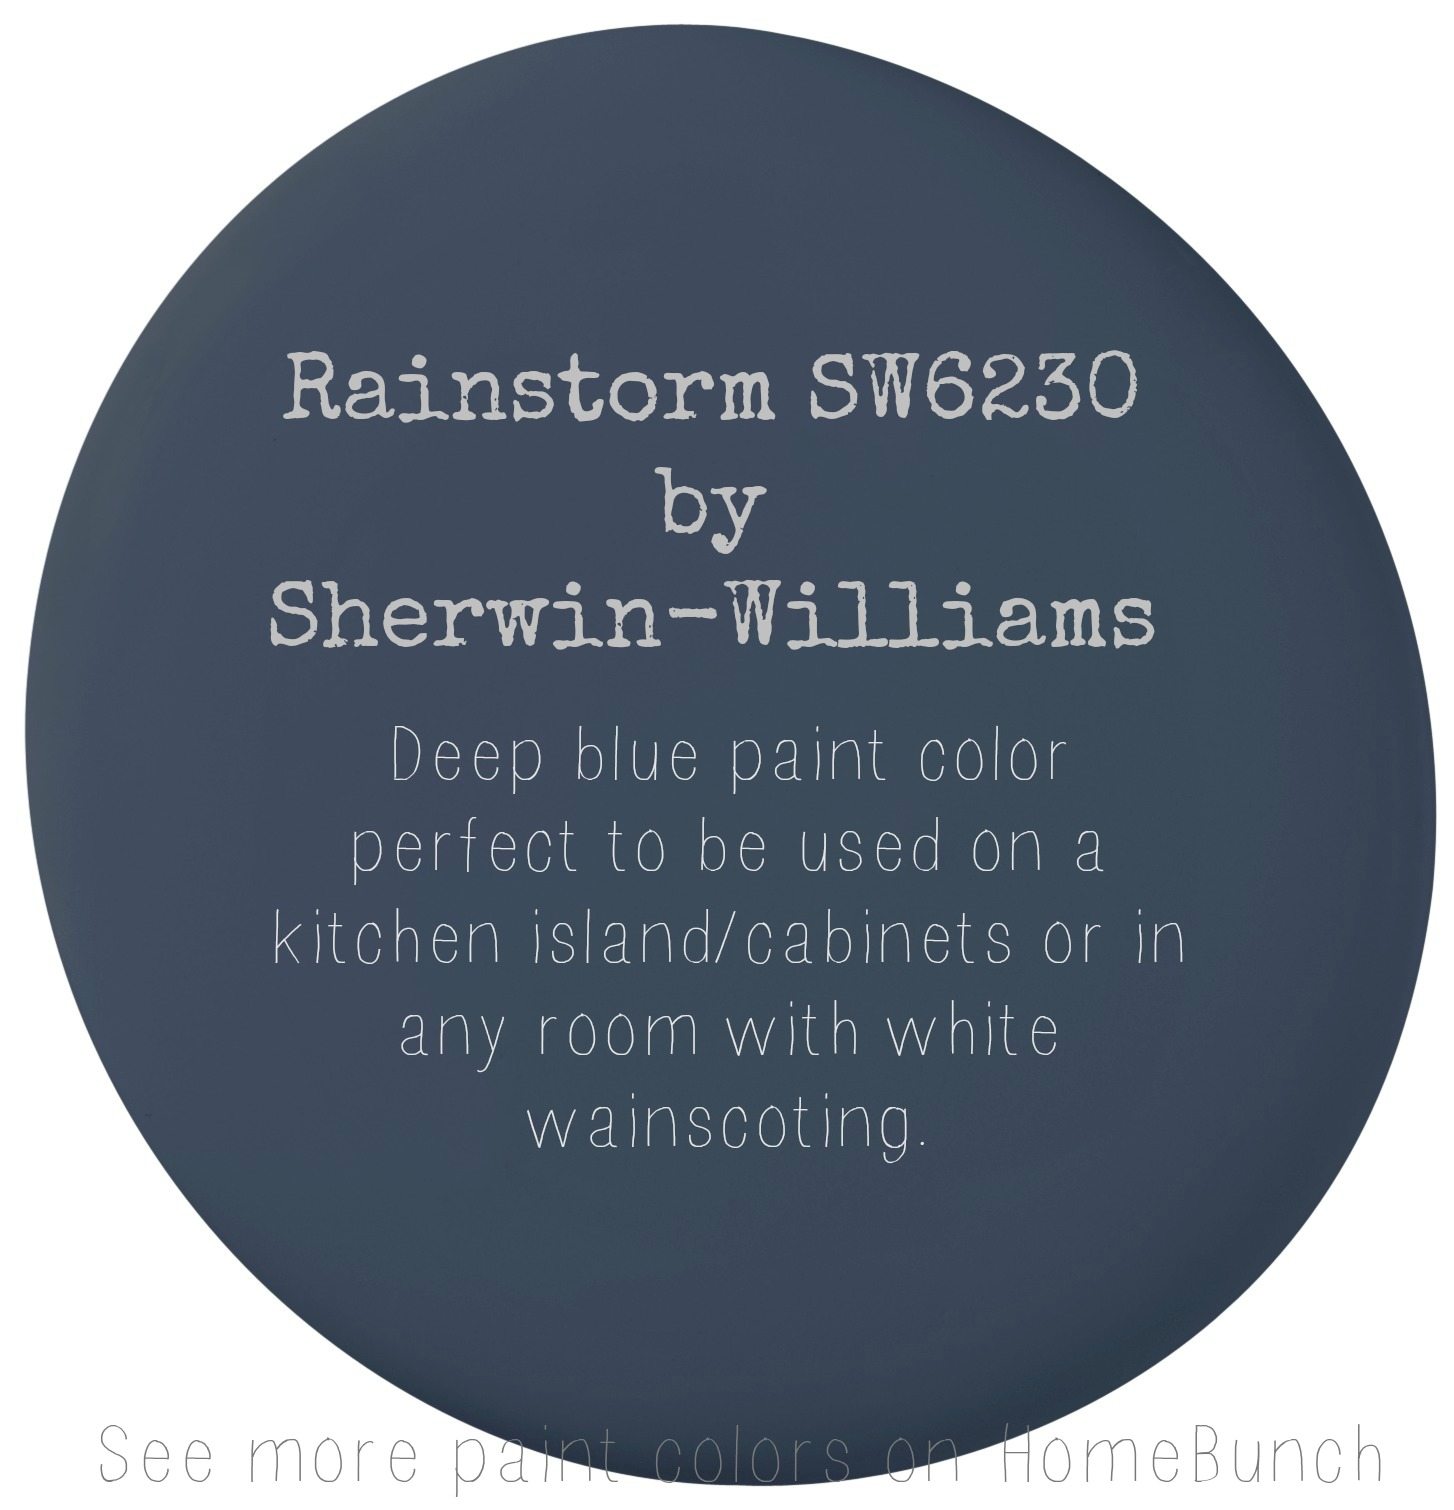 Rainstorm SW6230 by Sherwin Williams. Deep blue paint color perfect to be used on a kitchen island, cabinets or in any room with white wainscoting. #Rainstorm #SW6230 #SherwinWilliam Via Home Bunch.